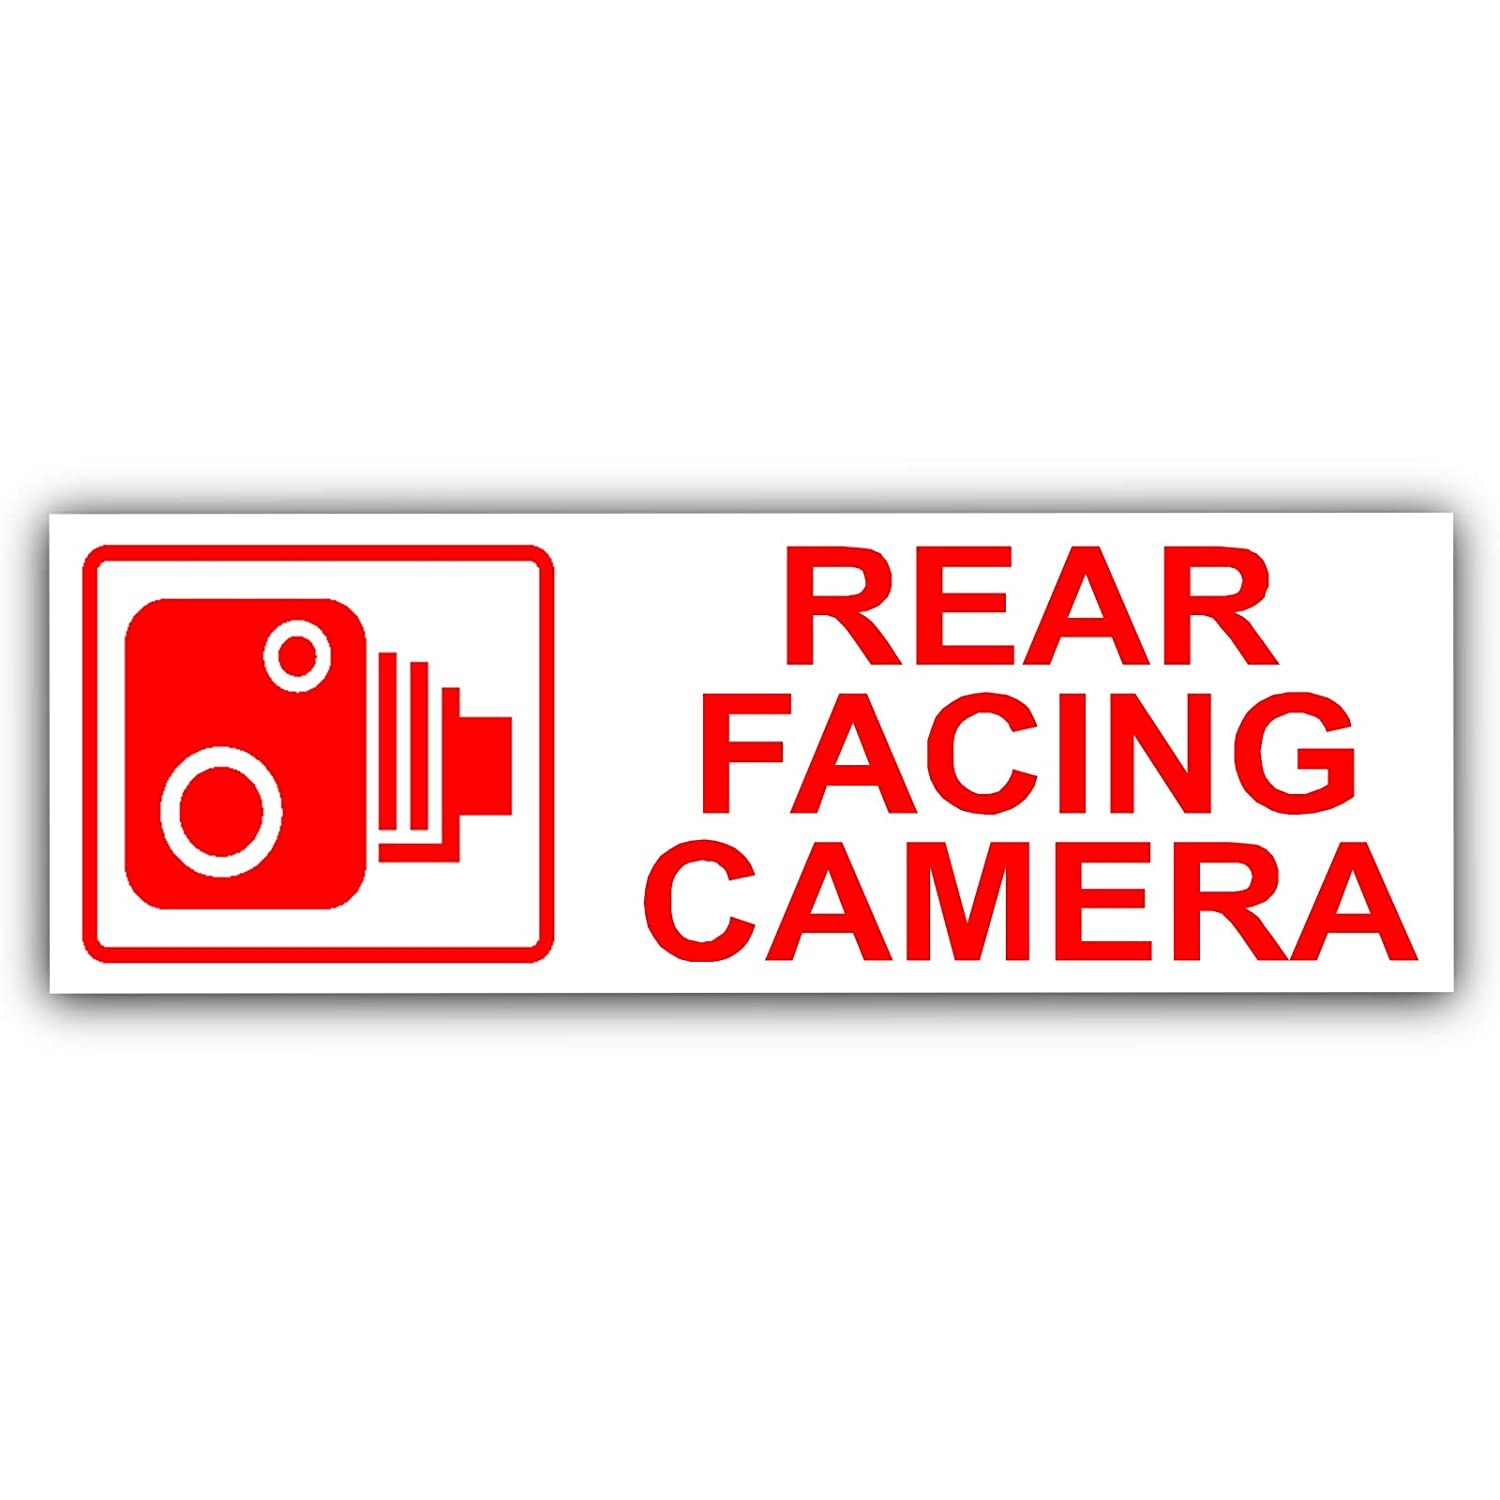 Platinum Place 5 x Rear Facing Camera EXTERNAL Stickers-Car, Taxi, Van, CCTV Signs-Go Pro, Tinted, Warning, Sign, Vehicle, Security, Secure, Protect, Protection